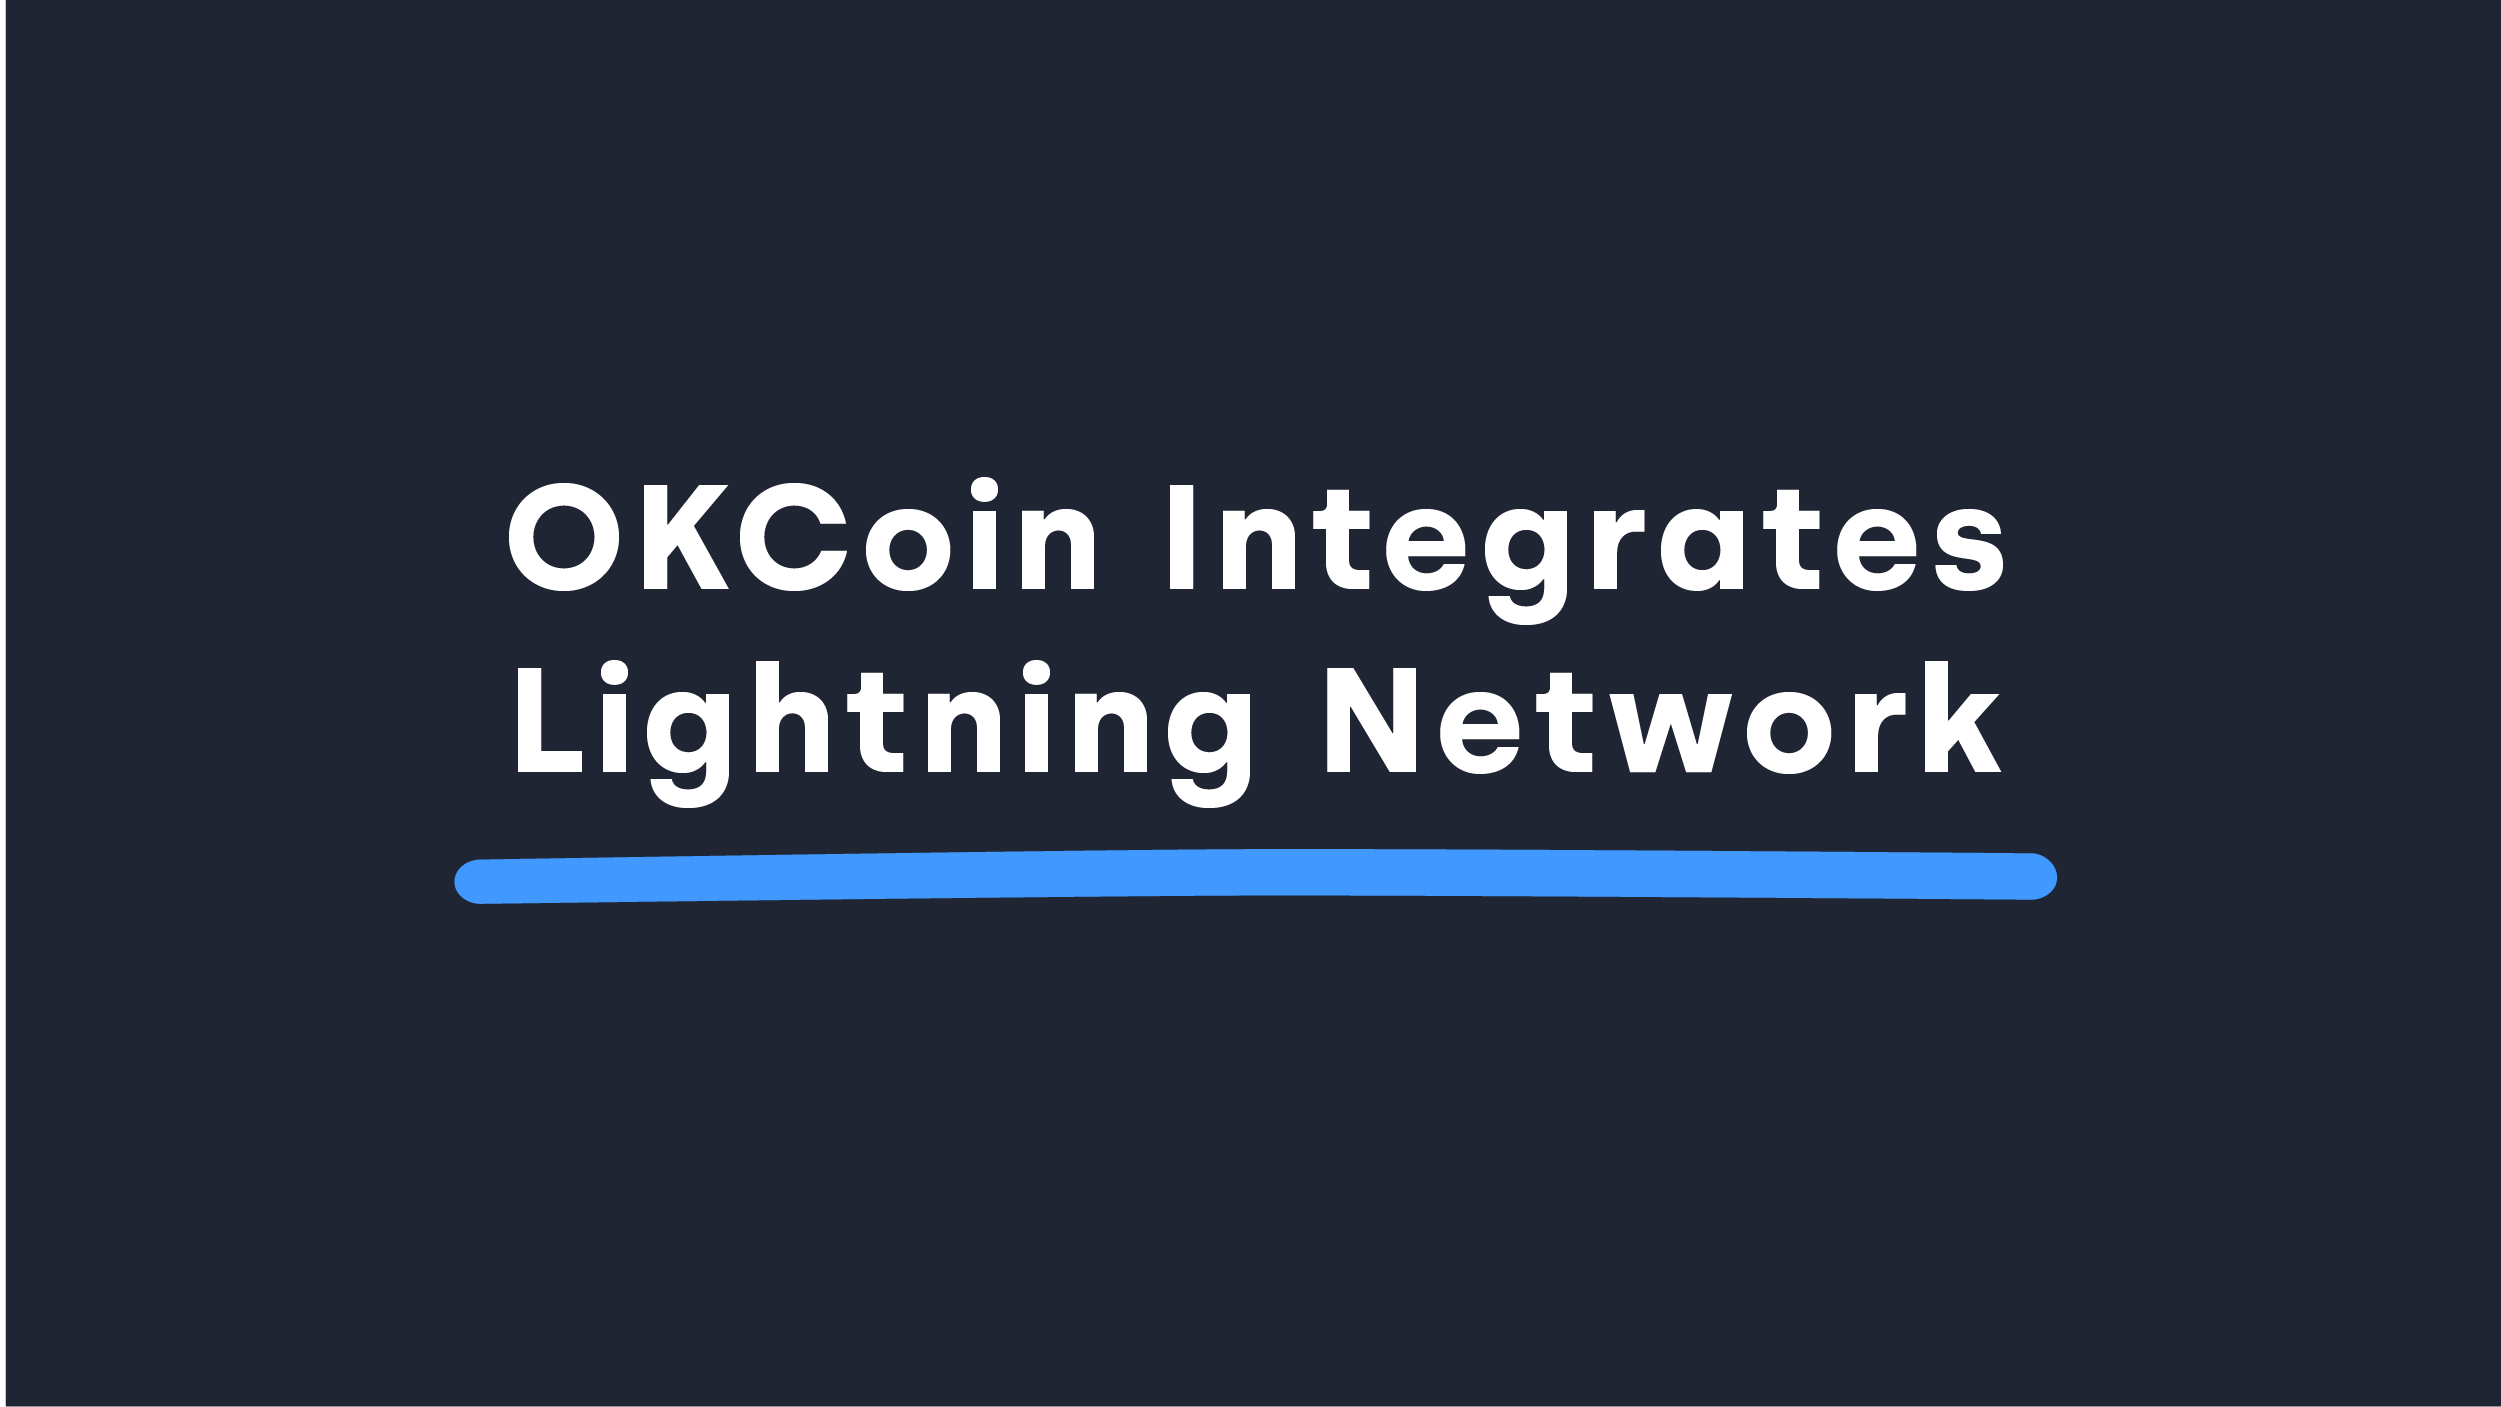 OKCoin integrates Lightning Network for faster and cheaper bitcoin transactions